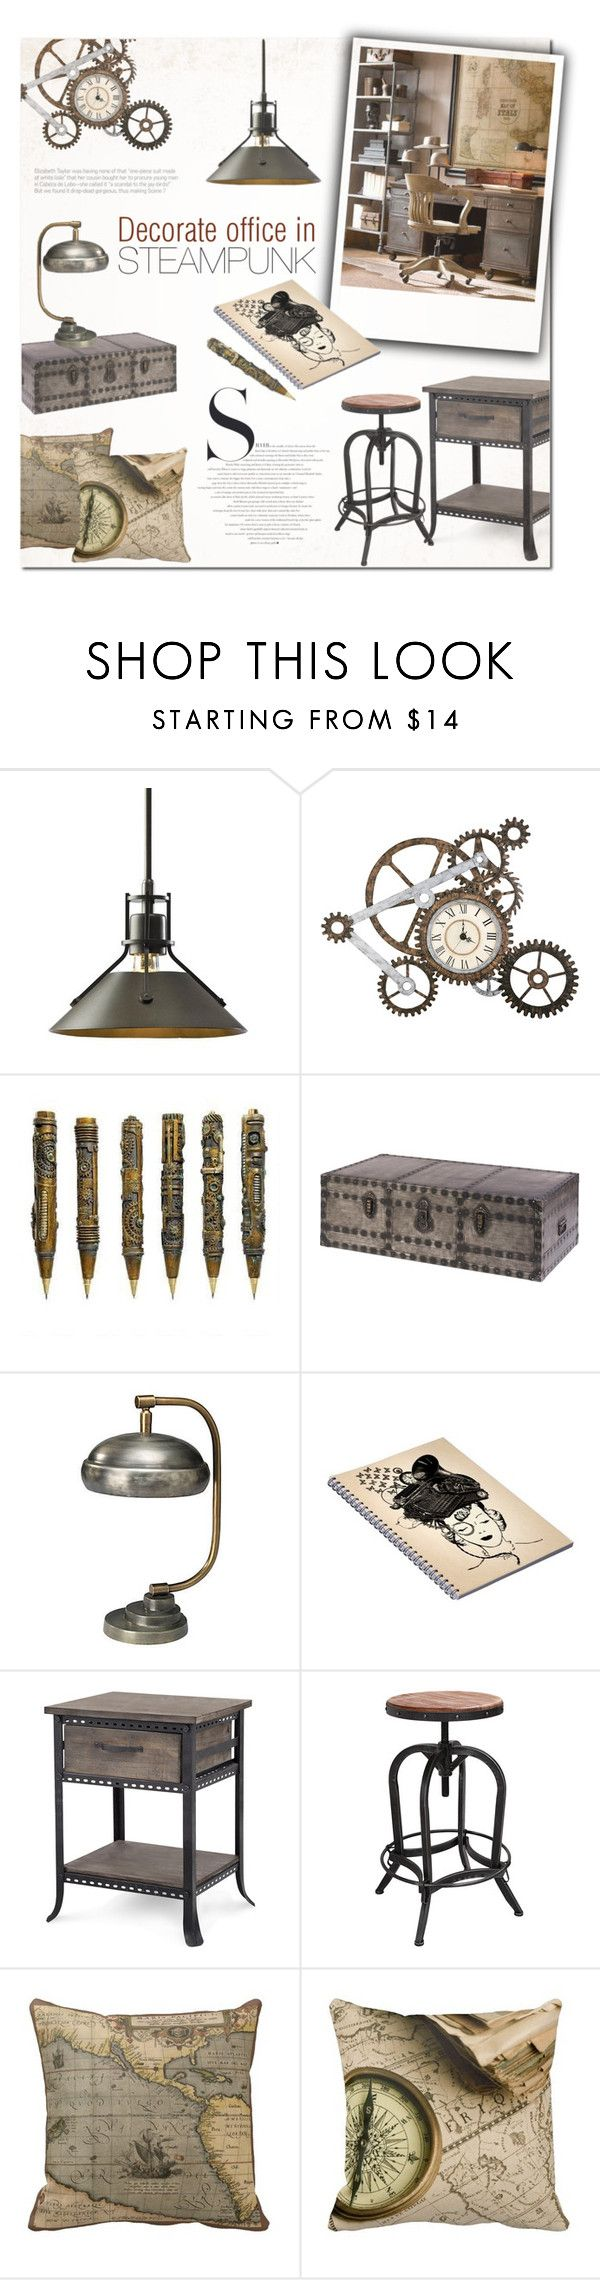 """Steampunk Office Decor"" by alexandrazeres ❤ liked on Polyvore featuring interior, interiors, interior design, home, home decor, interior decorating, Hubbardton Forge, Dot & Bo, Jamie Young and Adeco"